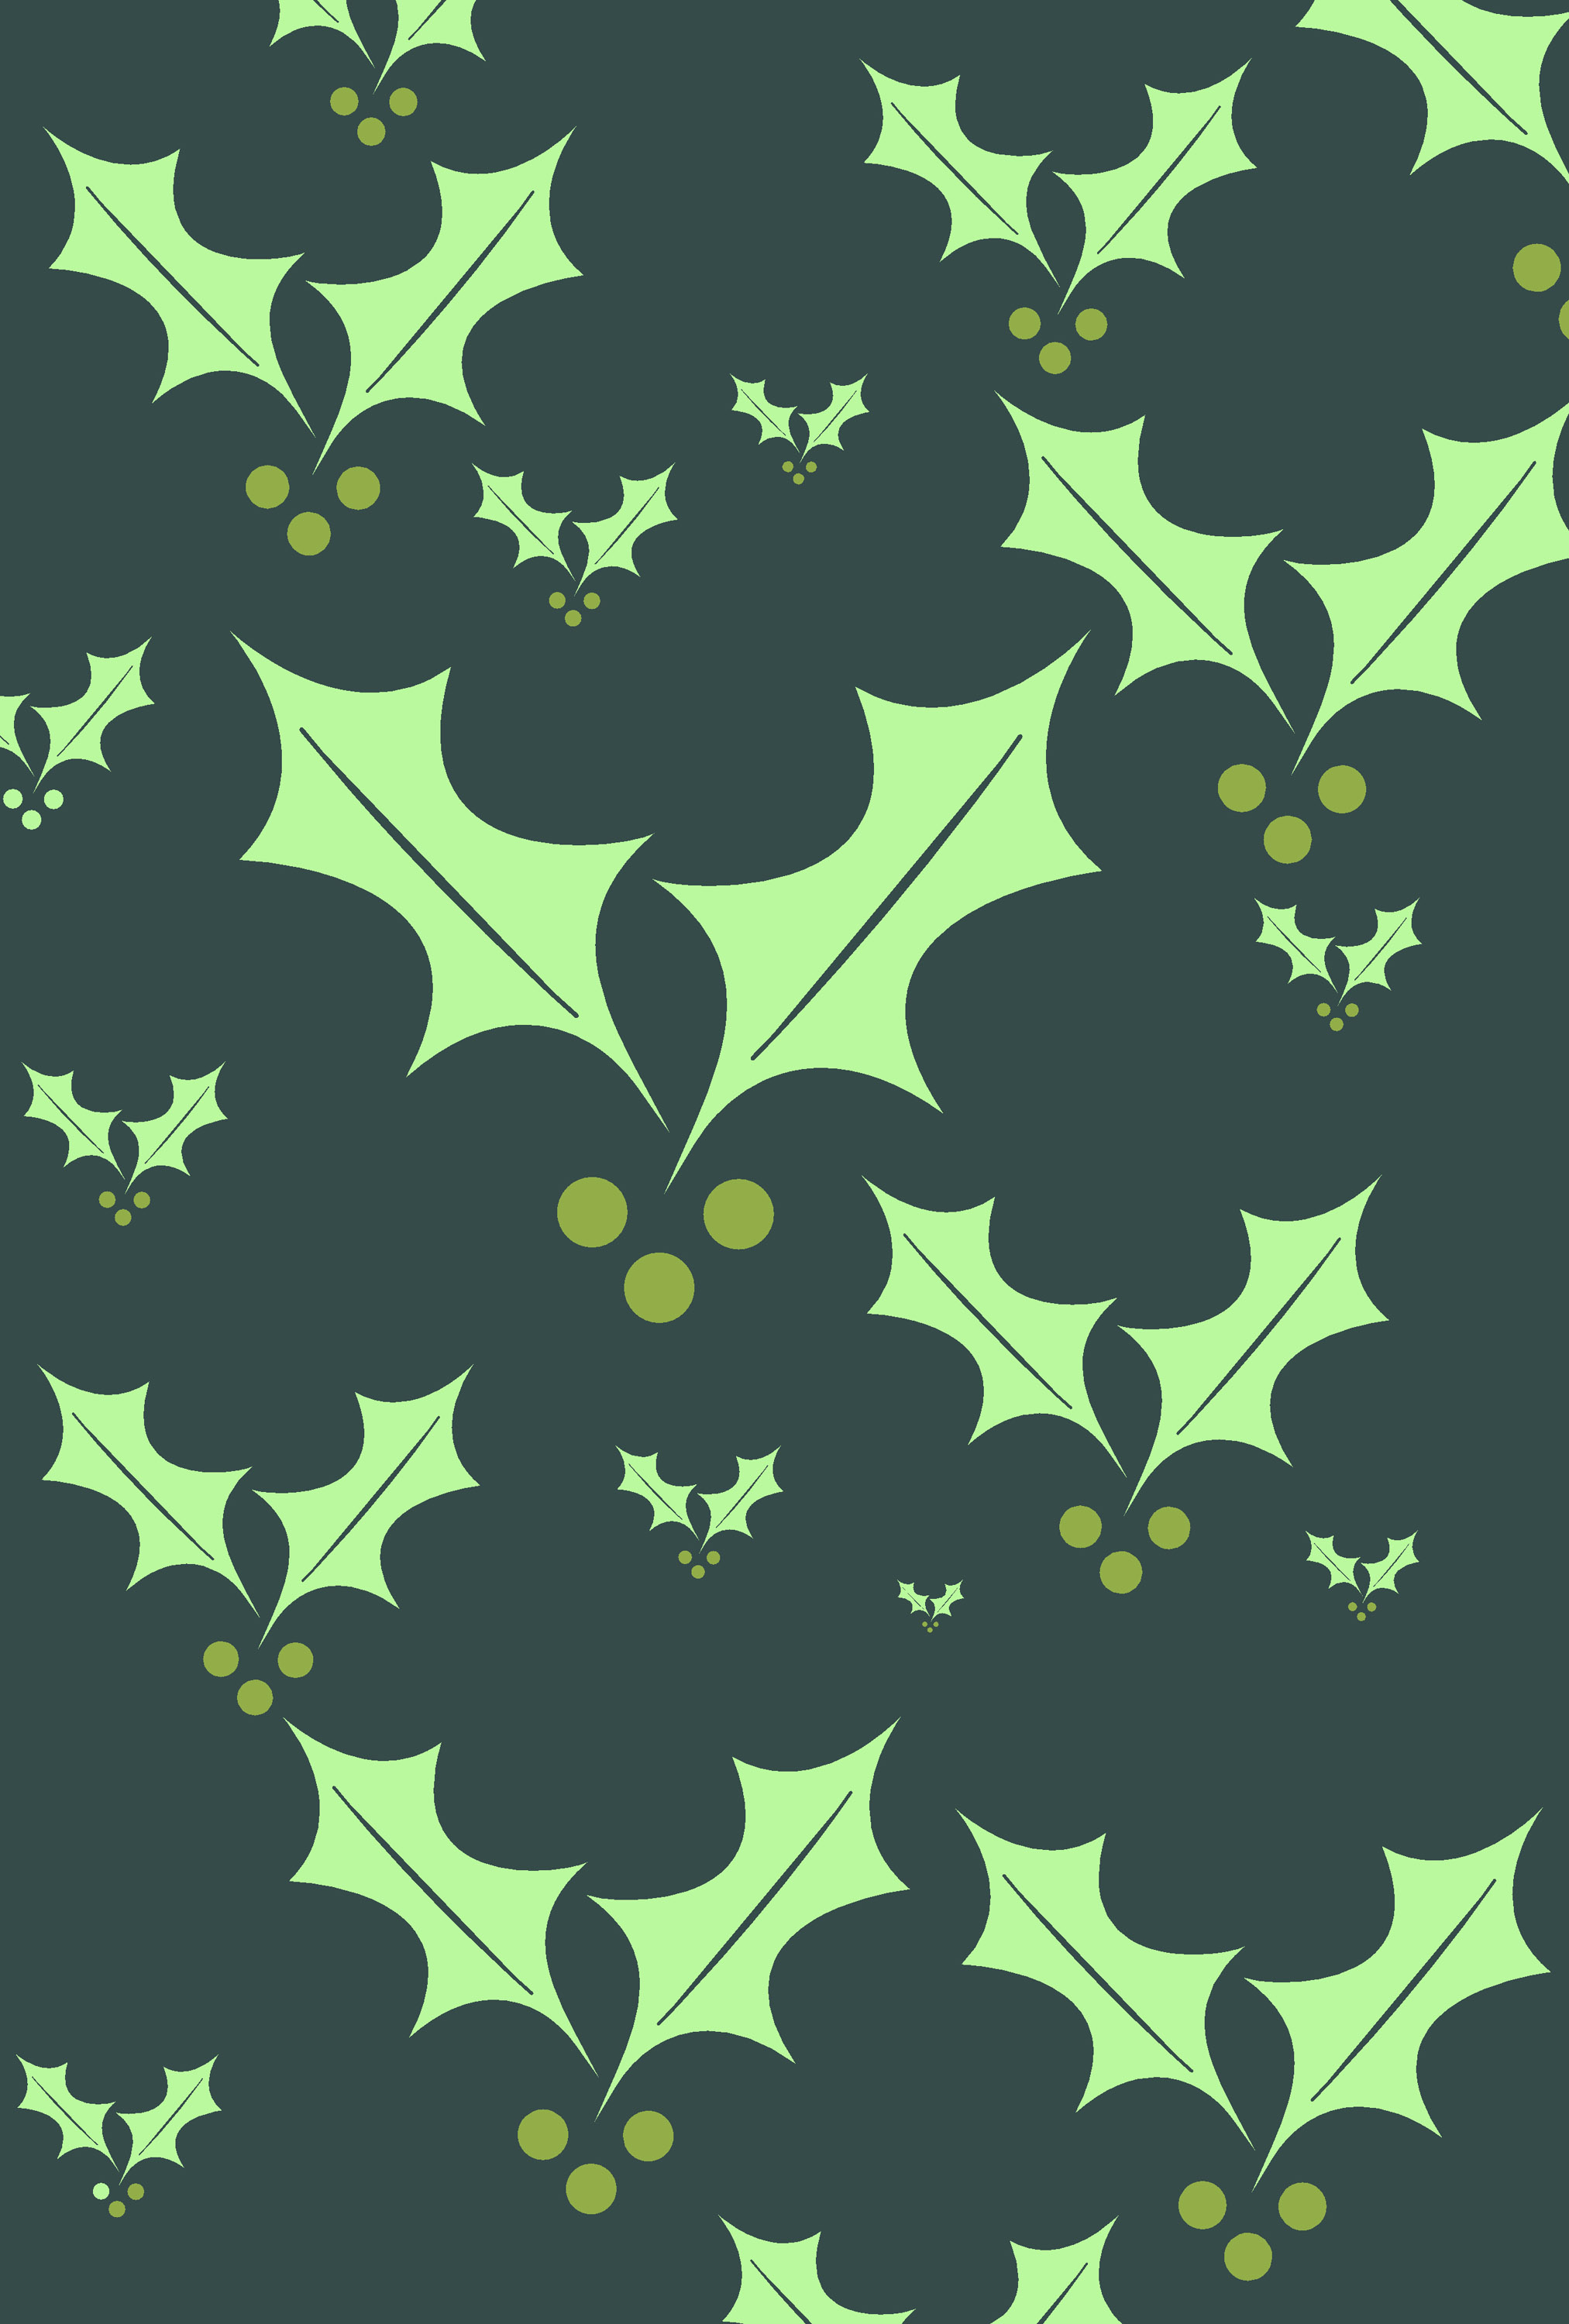 a pattern of varying sized green holly symbols creates a useful christmas background